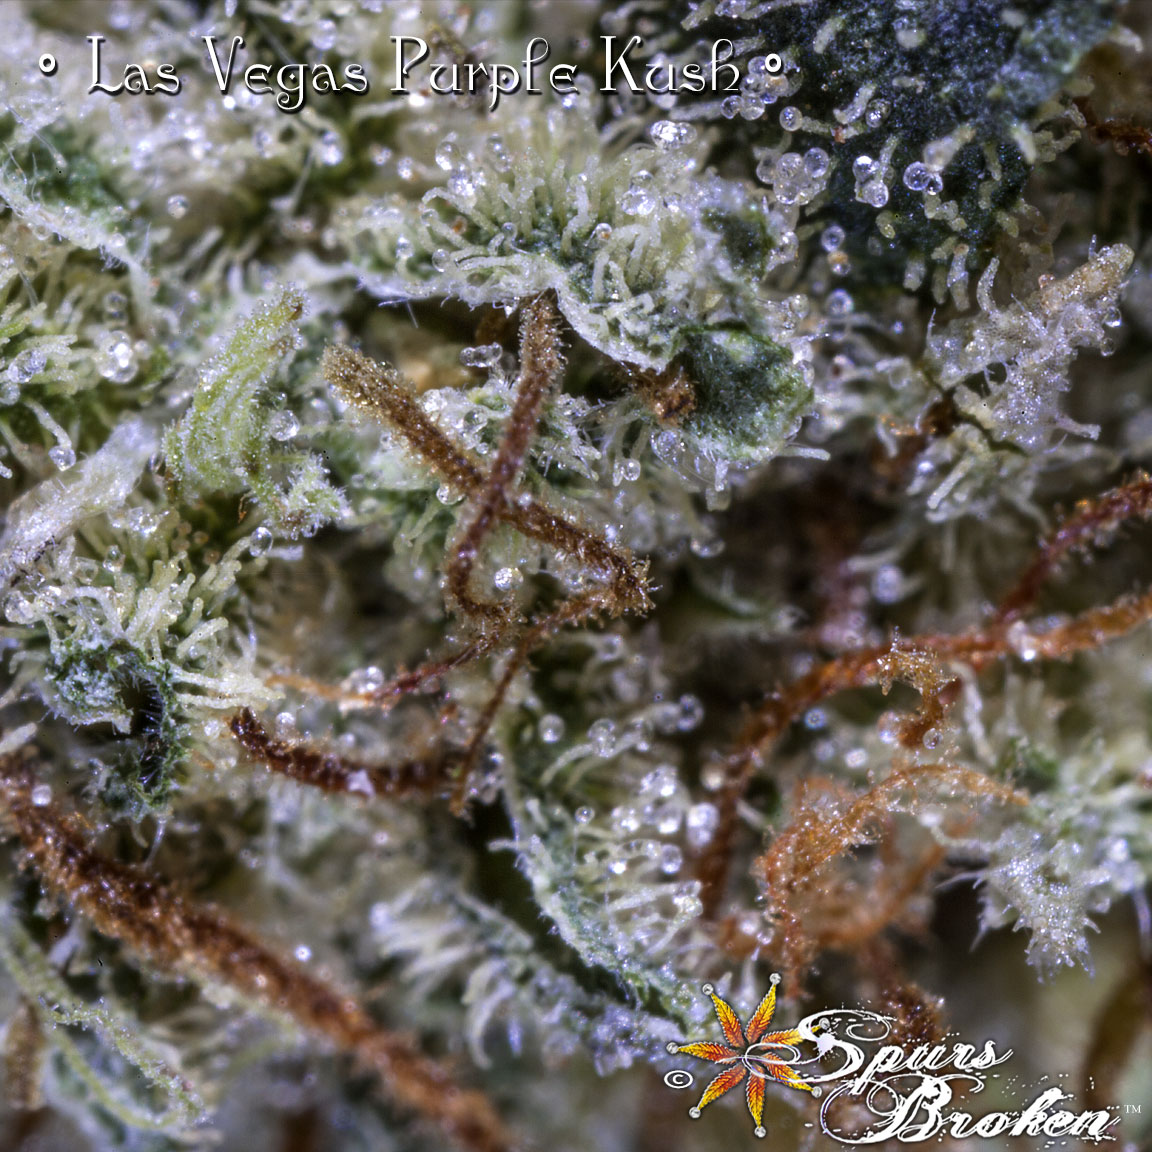 Las Vegas Purple Kush - Cannabis Macro Photography by Spurs Broken (Robert R. Sanders)